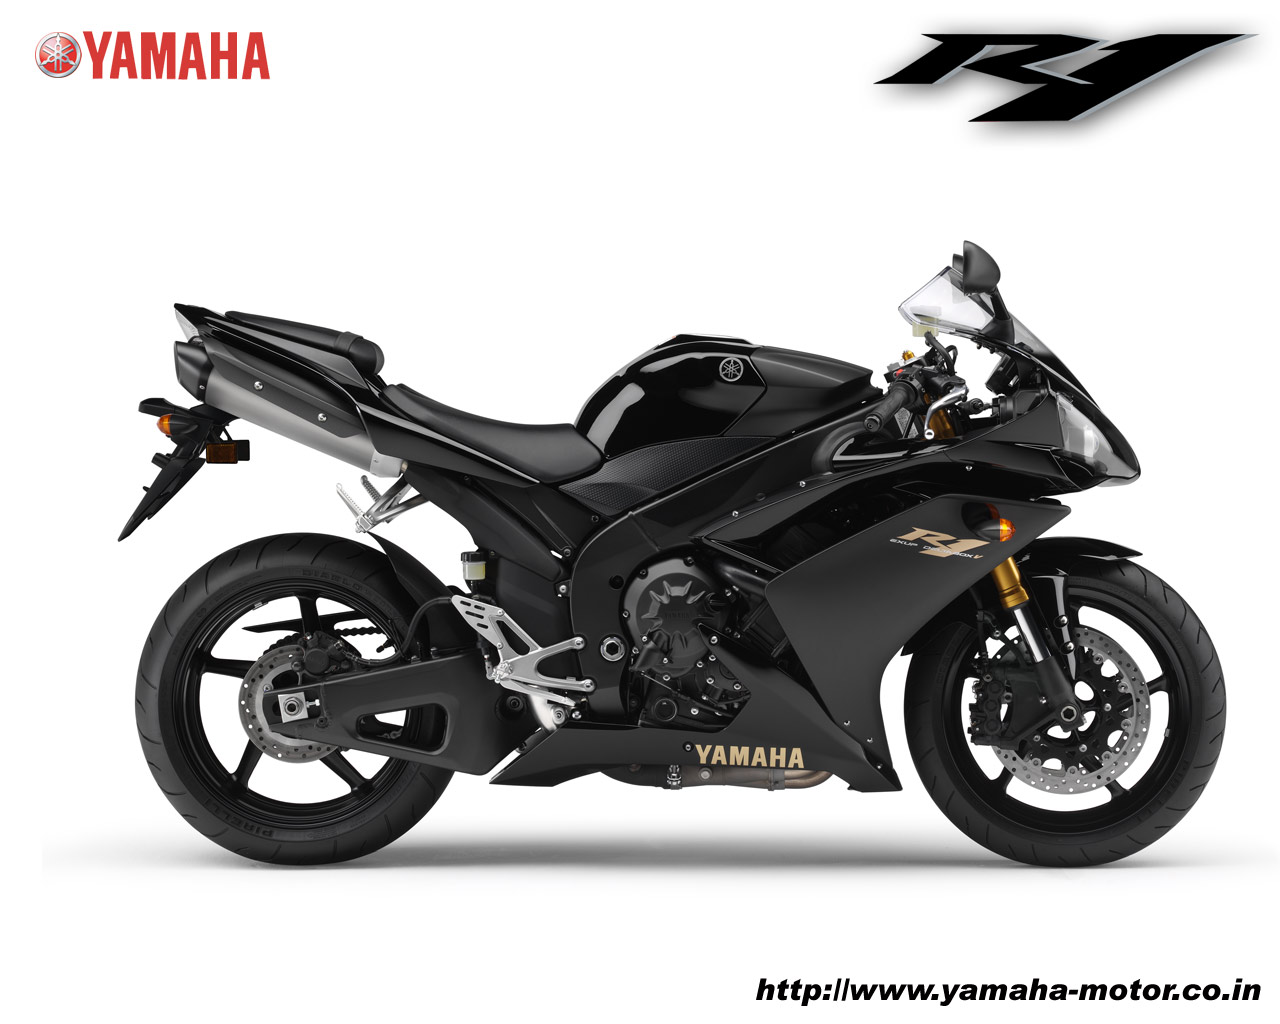 Yamaha YZF R1 Exclusive Wallpapers   Bikes4Sale 1280x1024